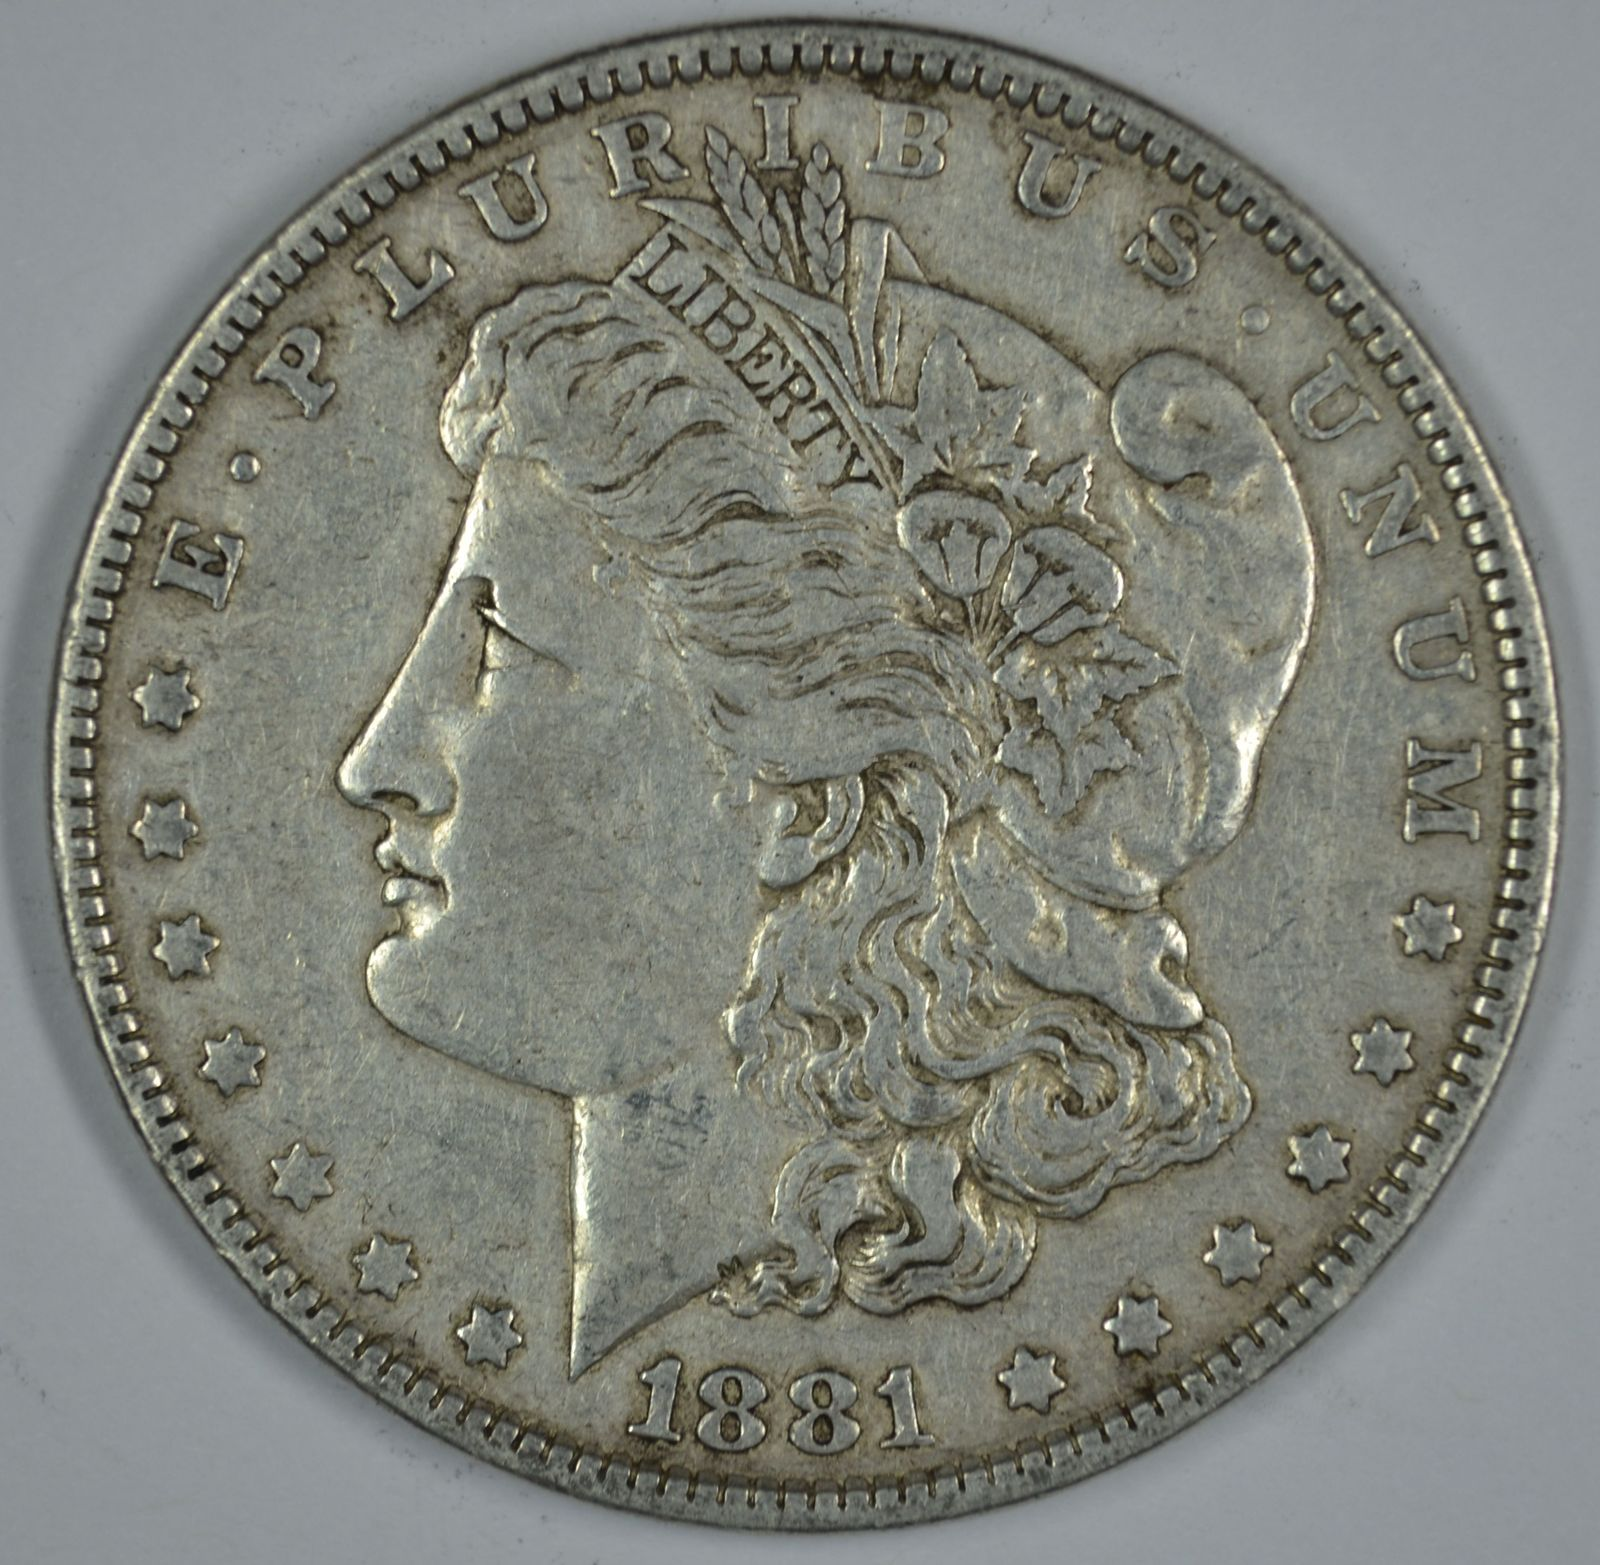 Primary image for 1881 P Morgan circulated silver dollar VF details